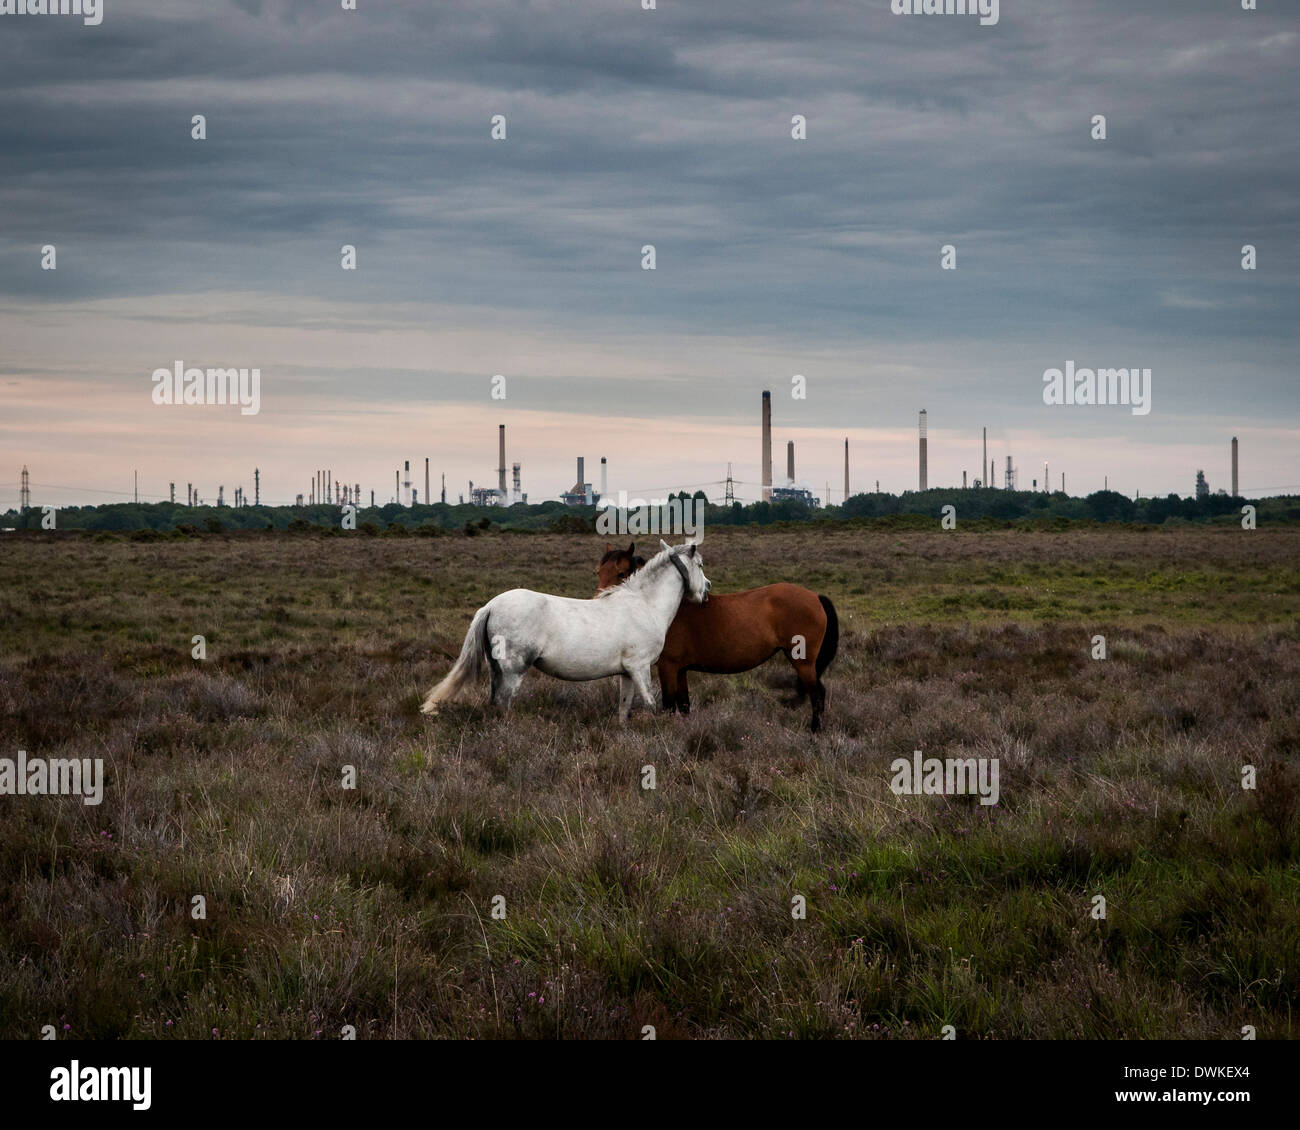 Fawley Oil Refinery, Fawley, United Kingdom. Architect: Various / unknown, 1951. Two new forest ponies with the Stock Photo